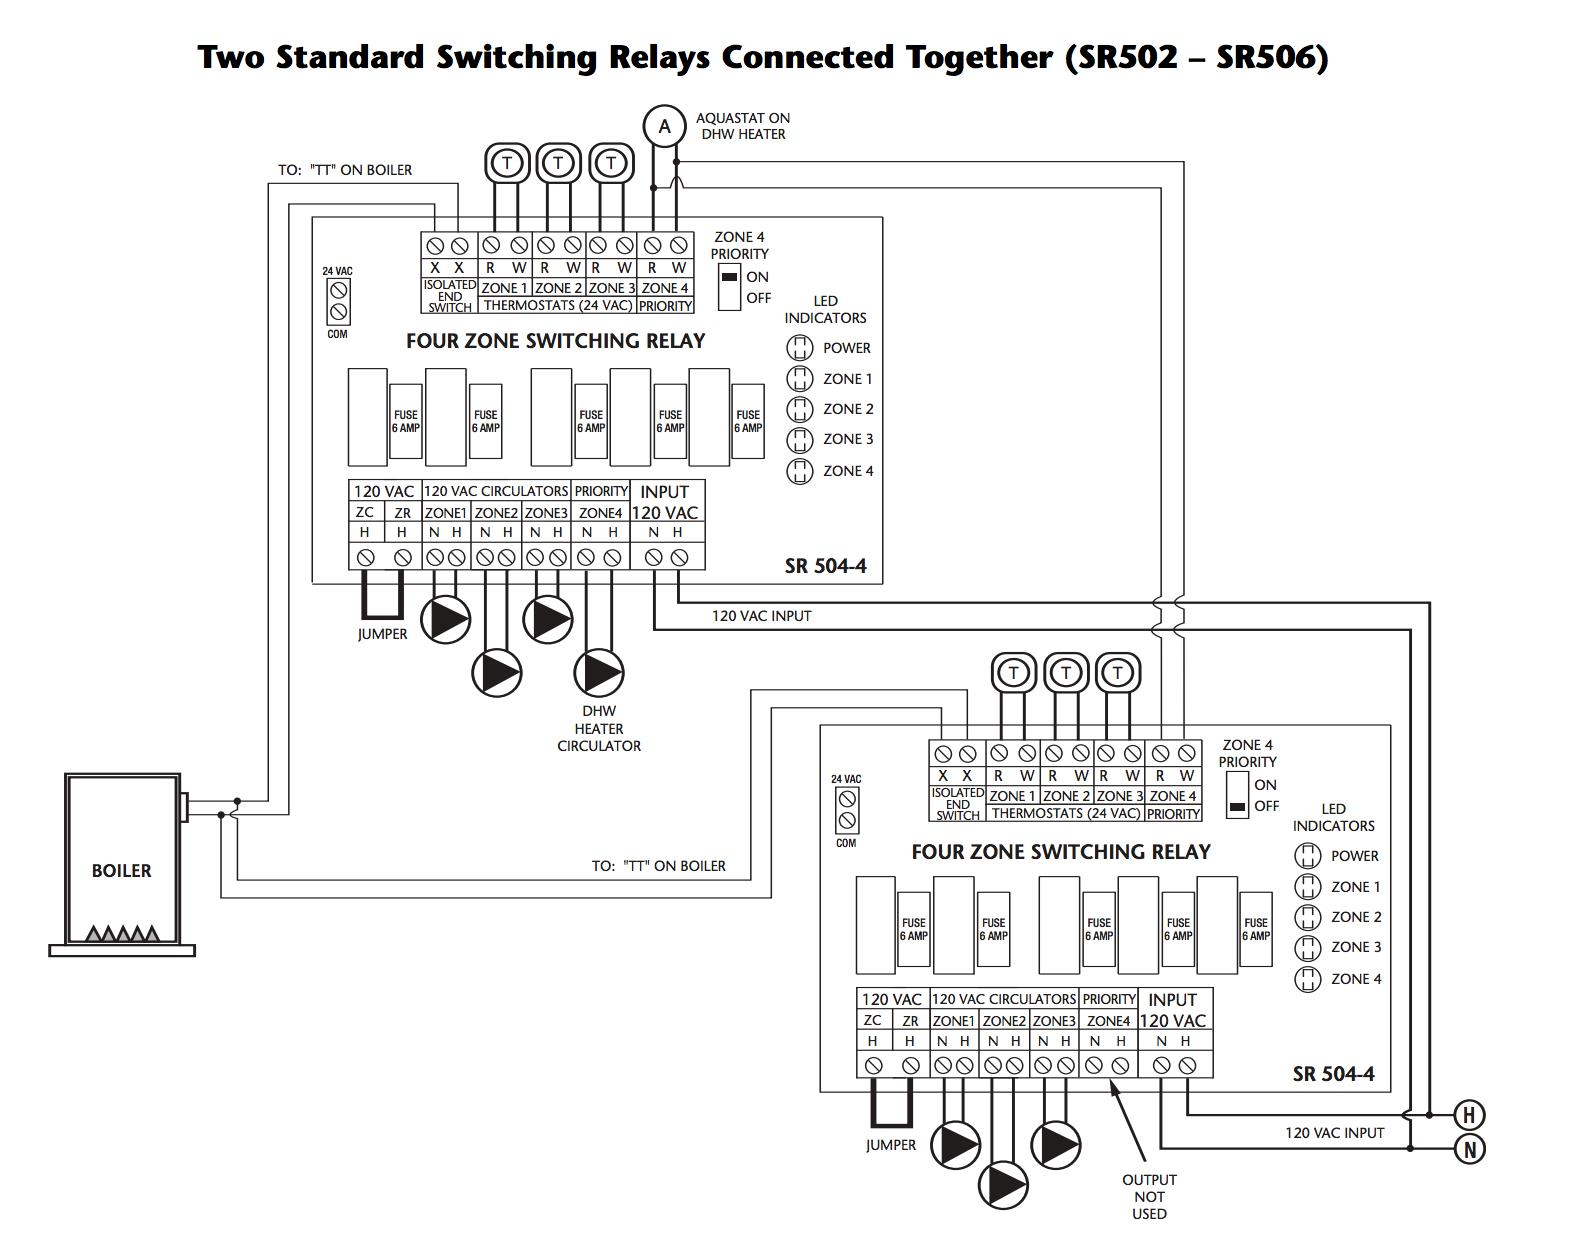 2FB7 Taco Zone Relay Wiring Diagram 3 | Wiring LibraryWiring Library